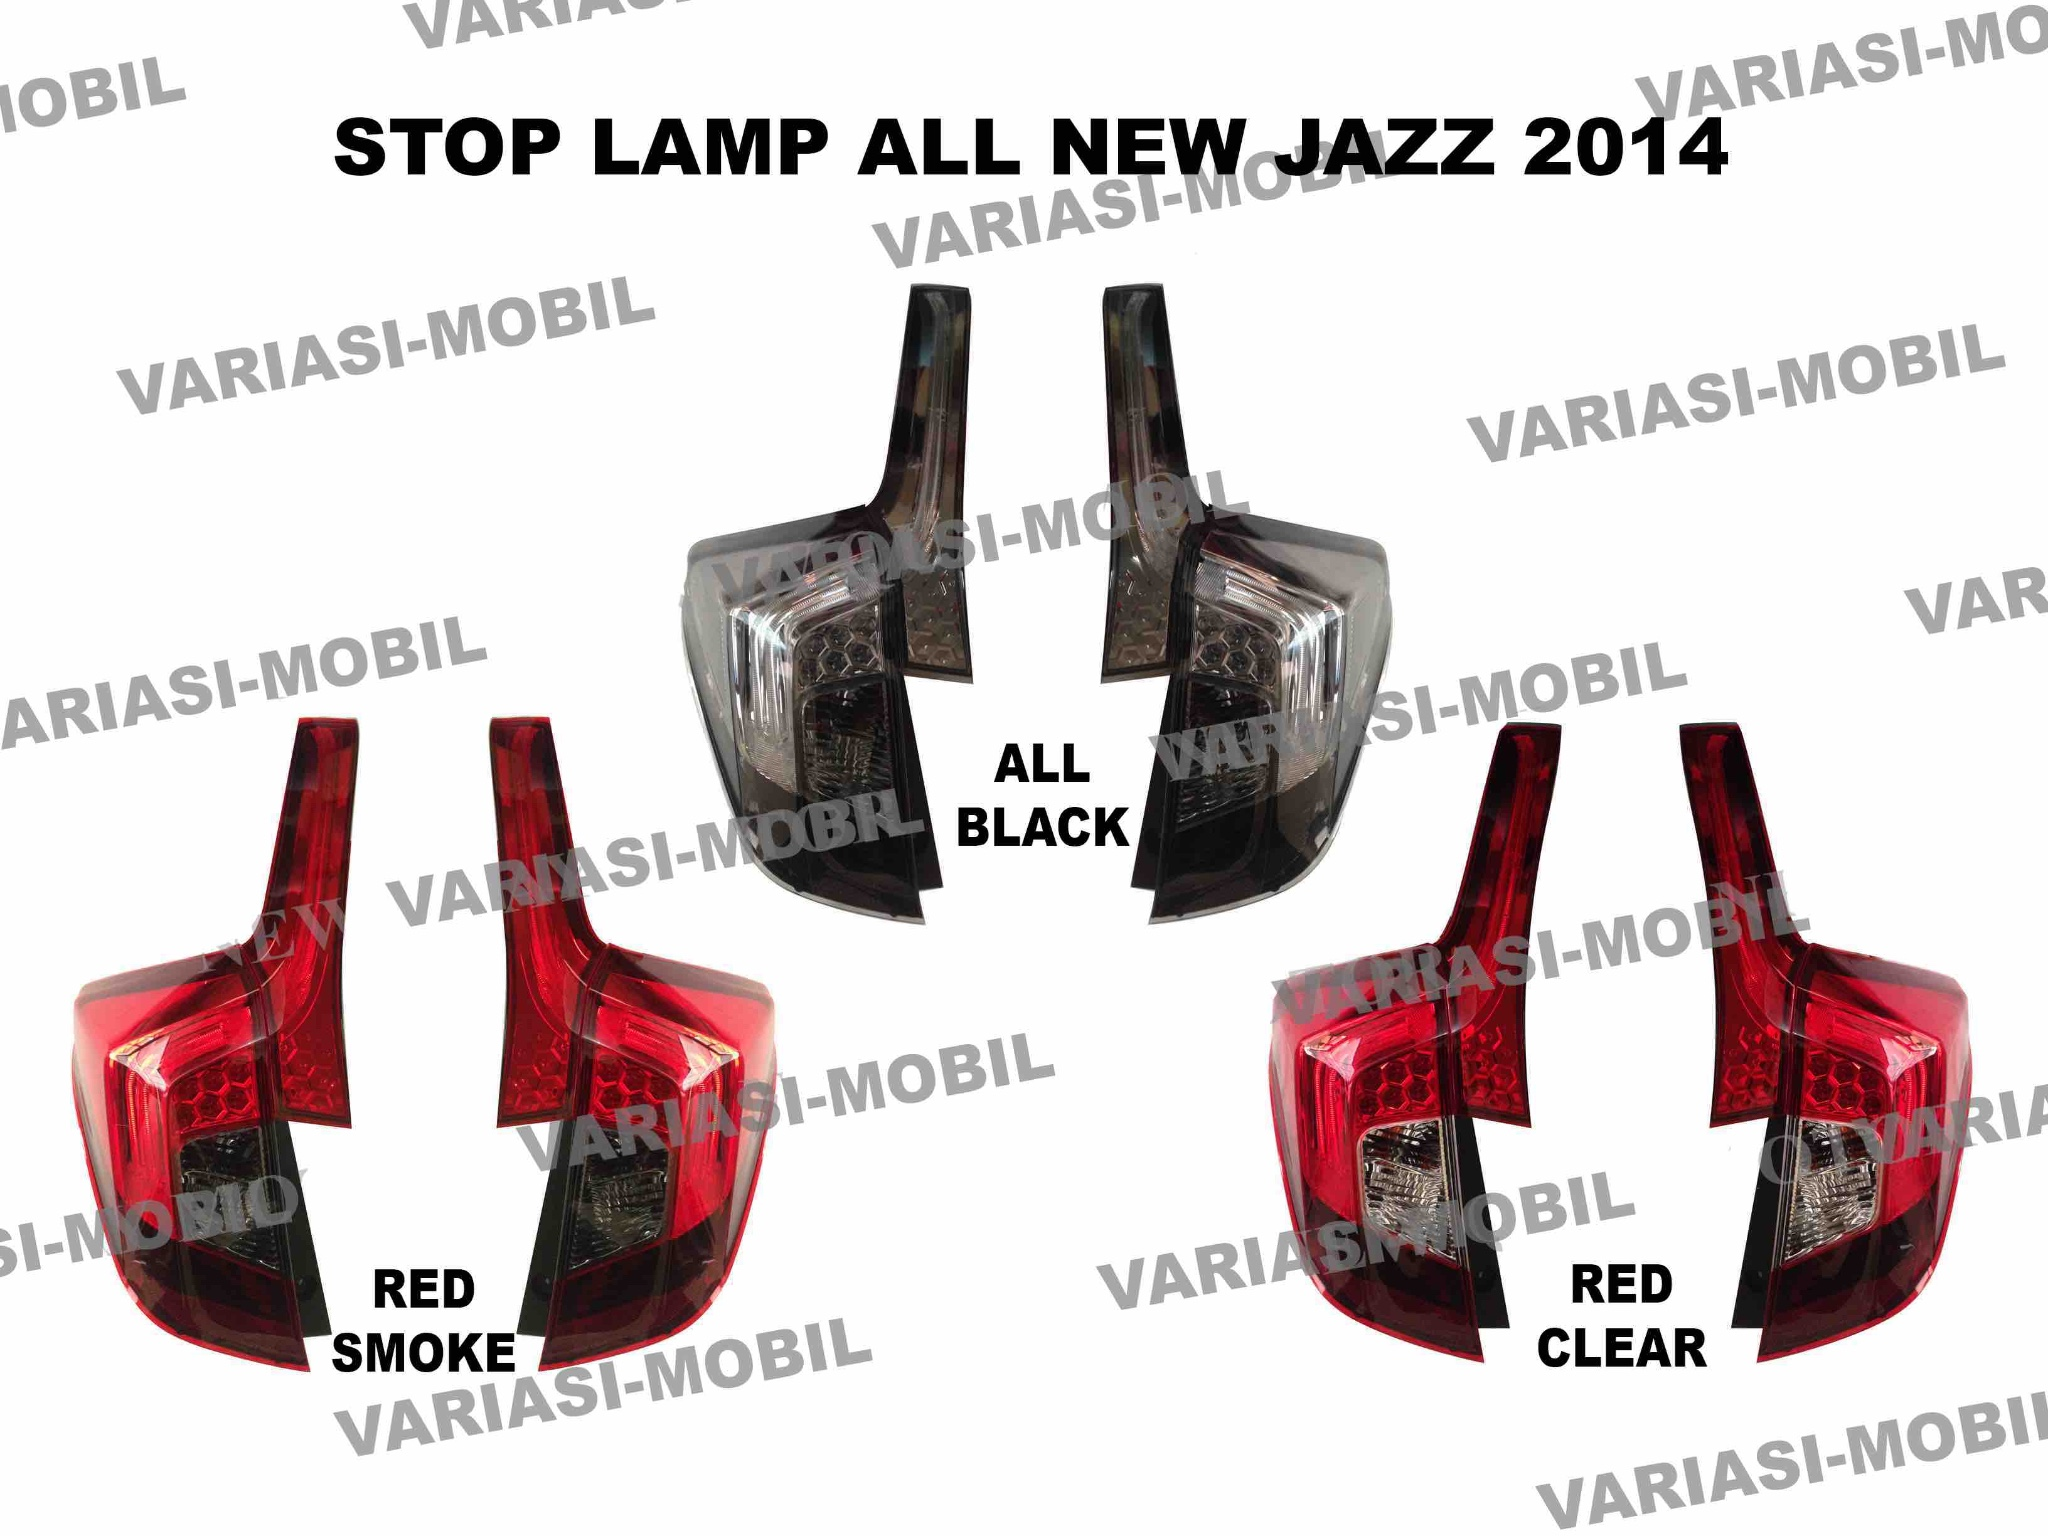 STOP LAMP ALL NEW JAZZ 2014